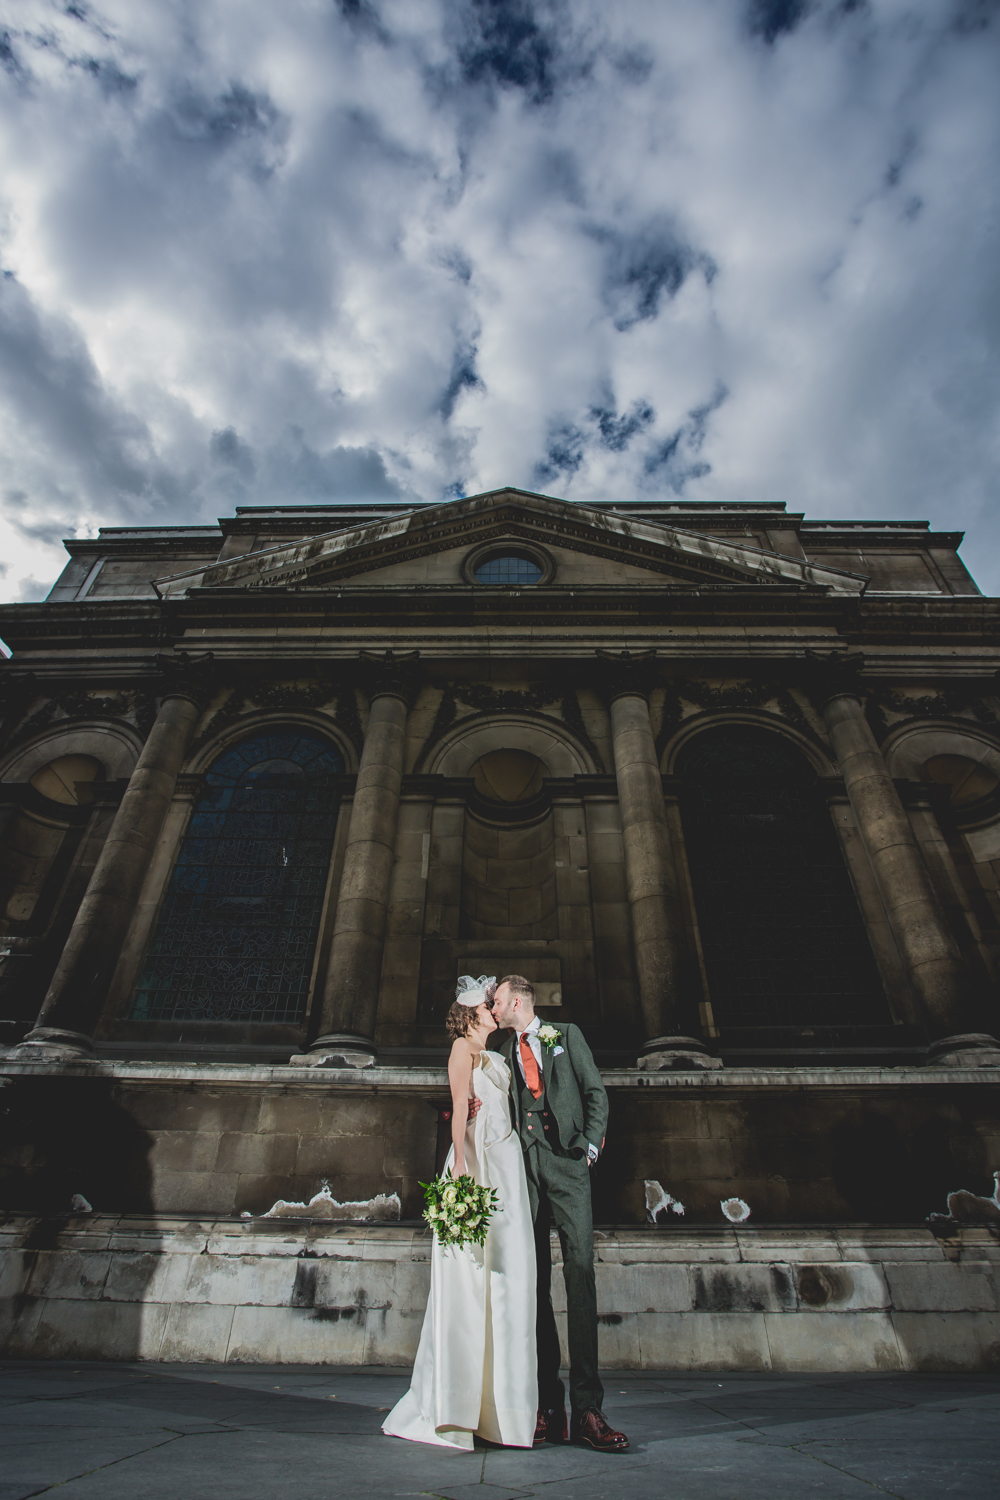 quirky london wedding photographers, mc motors-93.jpg